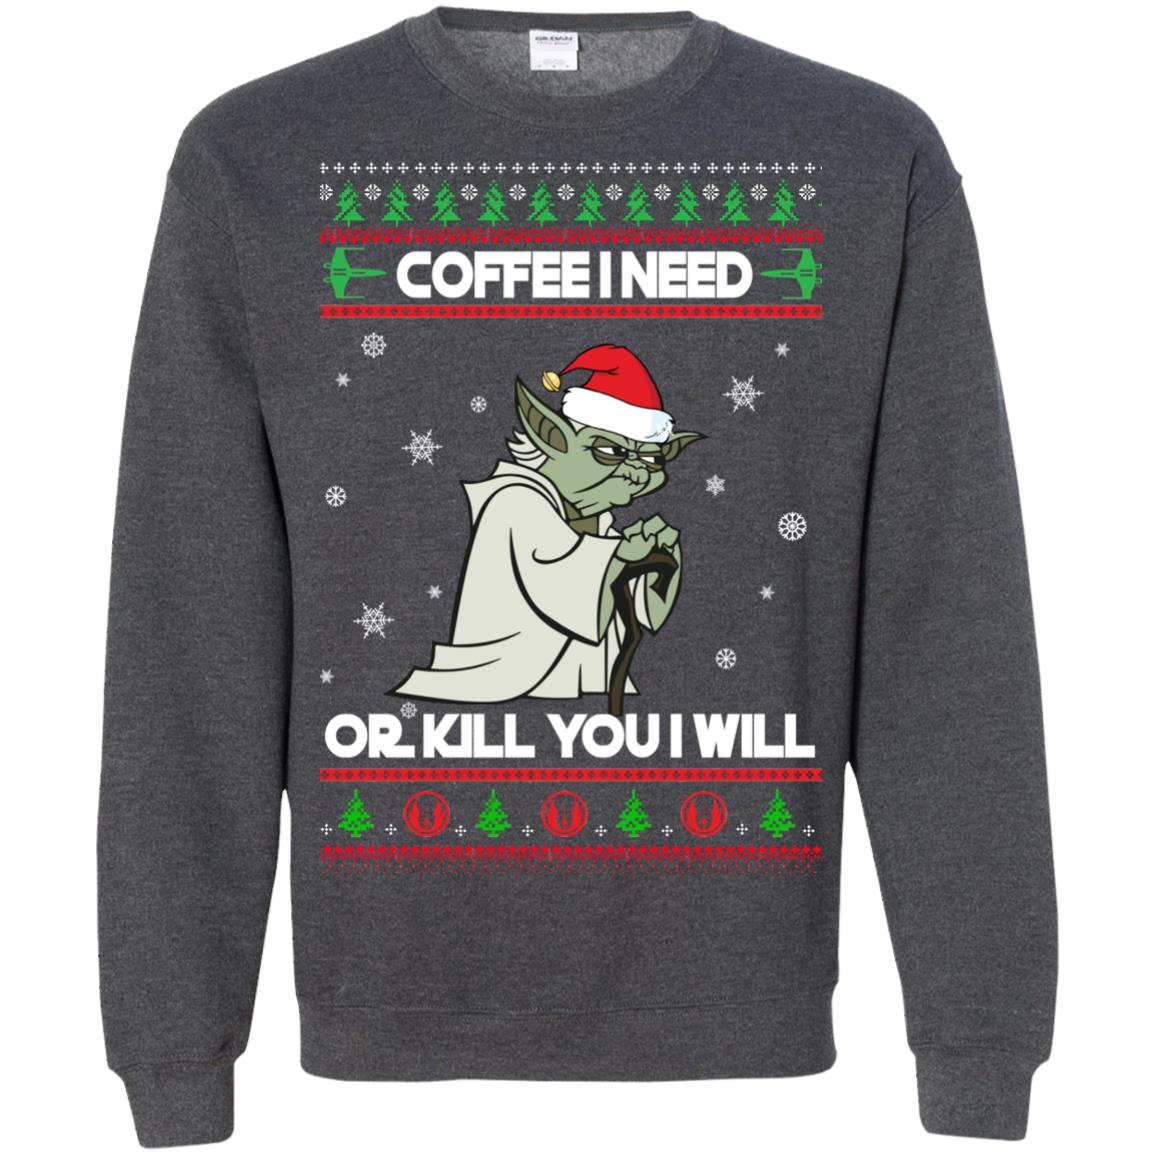 image 1251px Star Wars Yoda Sweater: Coffee I Need Or Kill You I Will Christmas Sweater